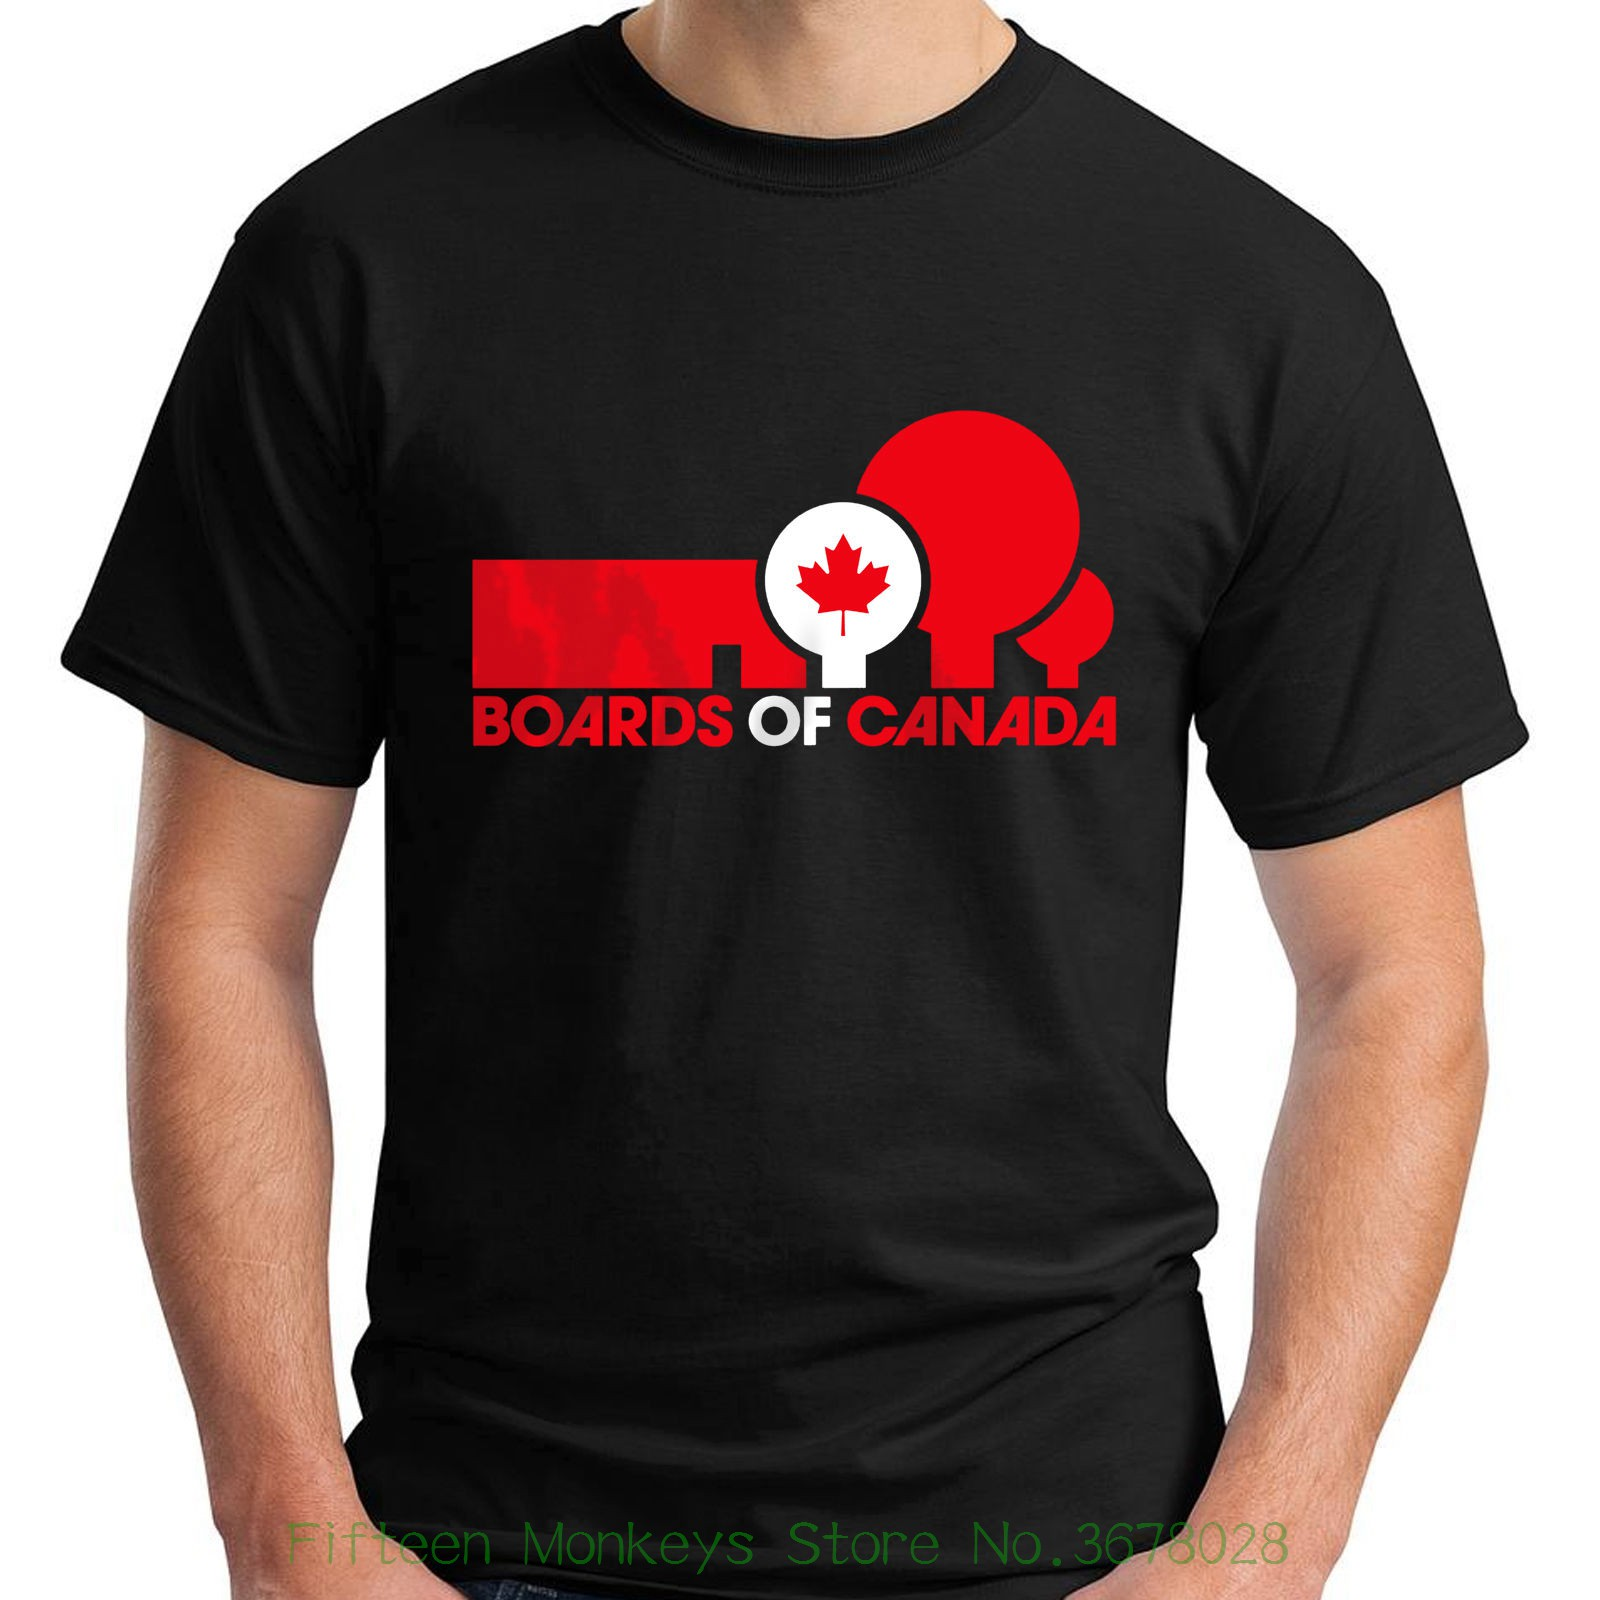 Unisex More Size And Colors Boards Of Canada Boc Electronic Hip Hop Short Sleeve Black Mens T-shirt S - 5xl